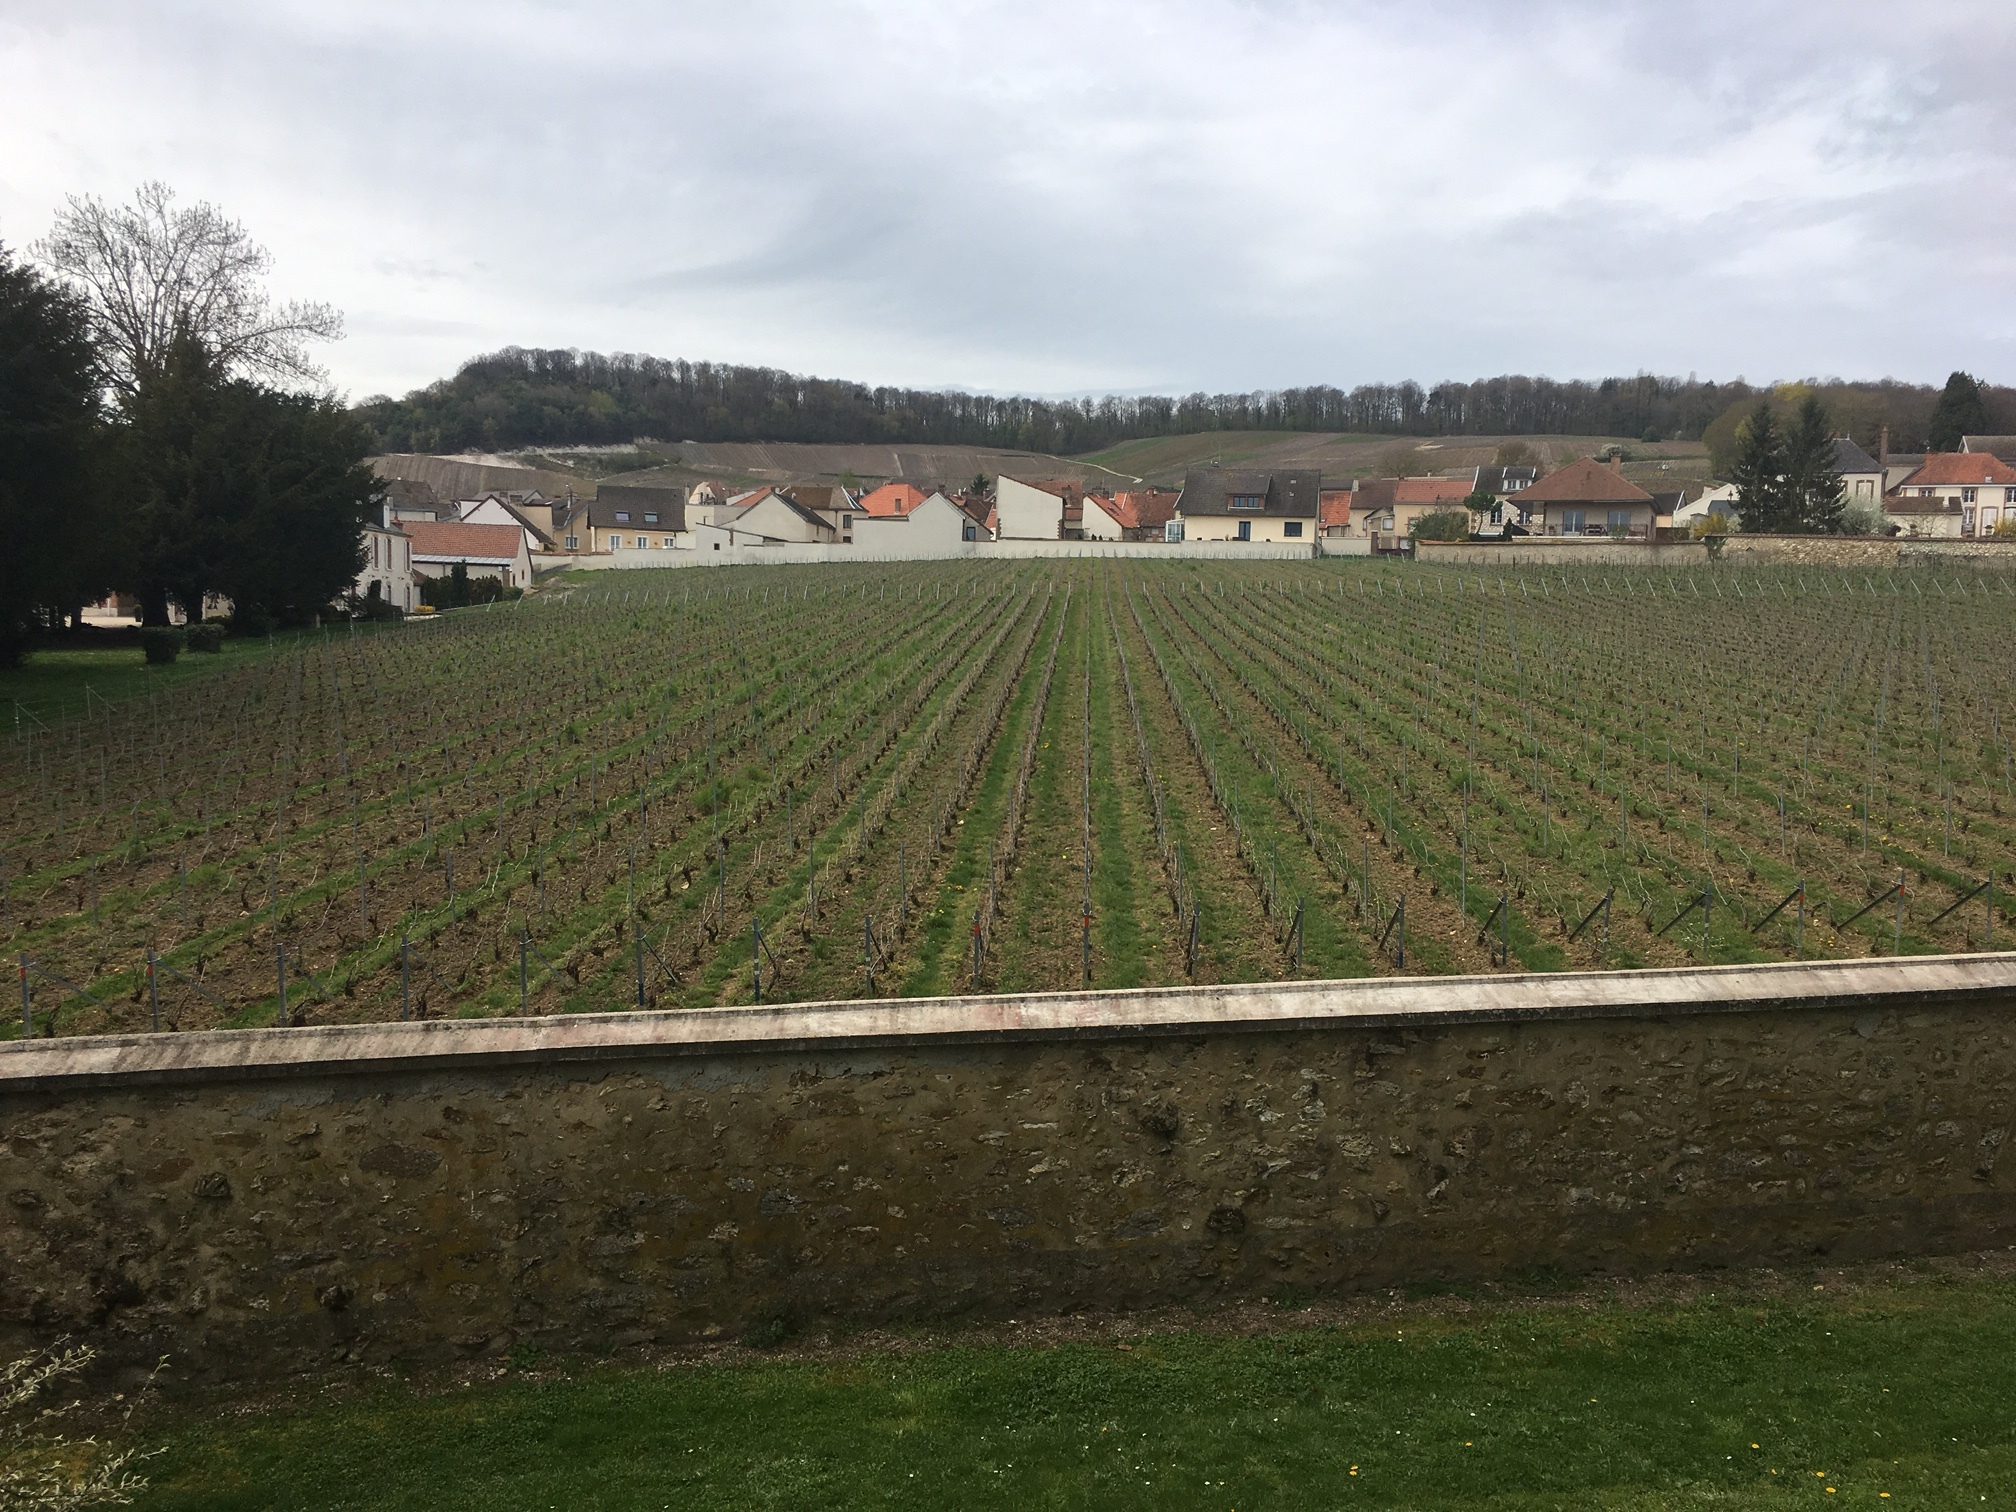 the famous Clos de Mesnil, owned by Krug